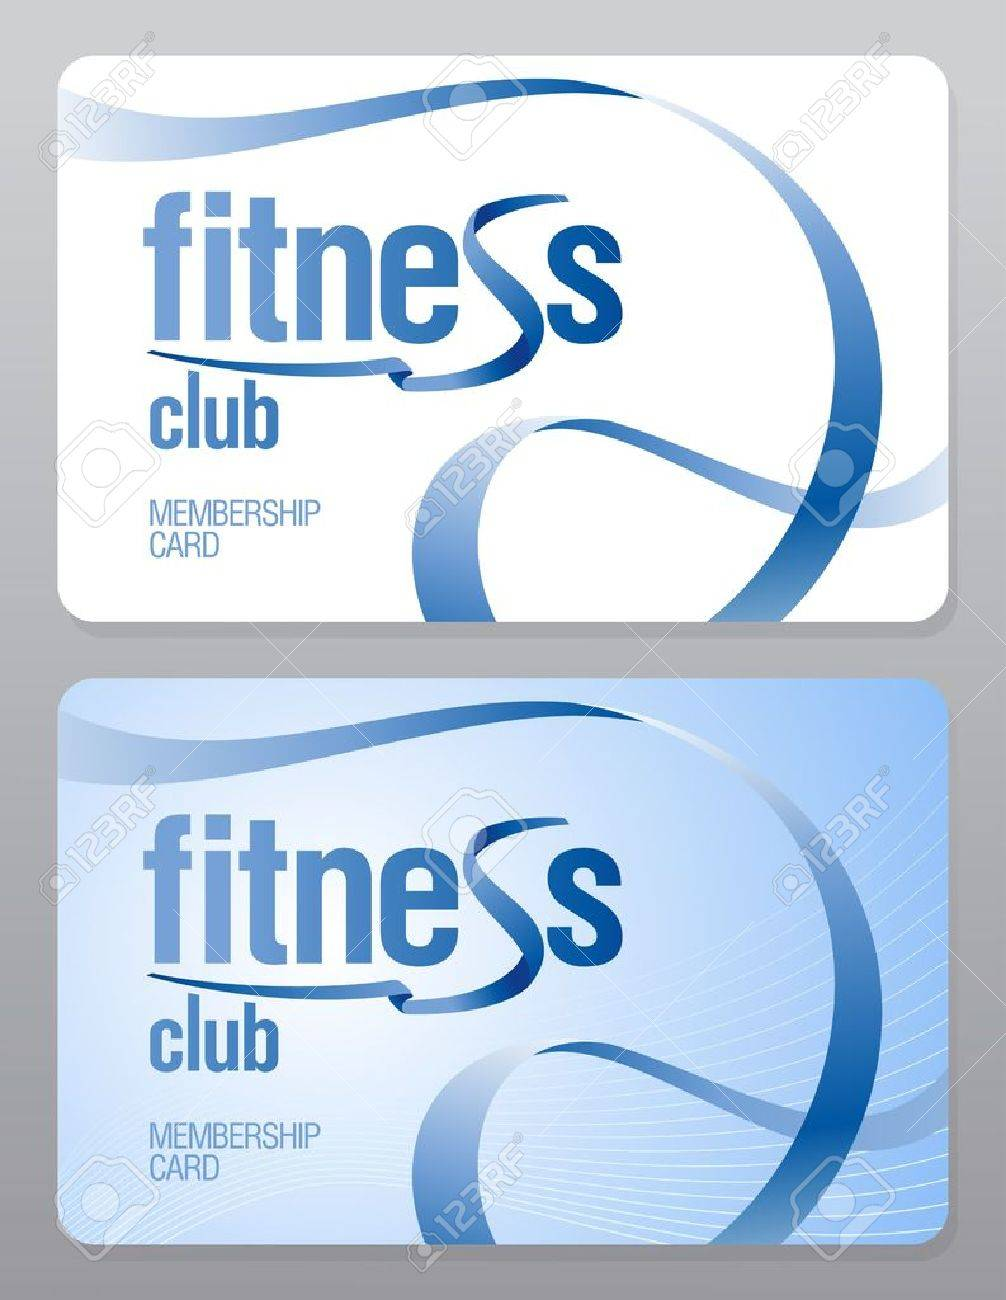 Marvelous Fitness Club Membership Card Design Template. Stock Vector   11905865 Intended For Club Membership Card Template